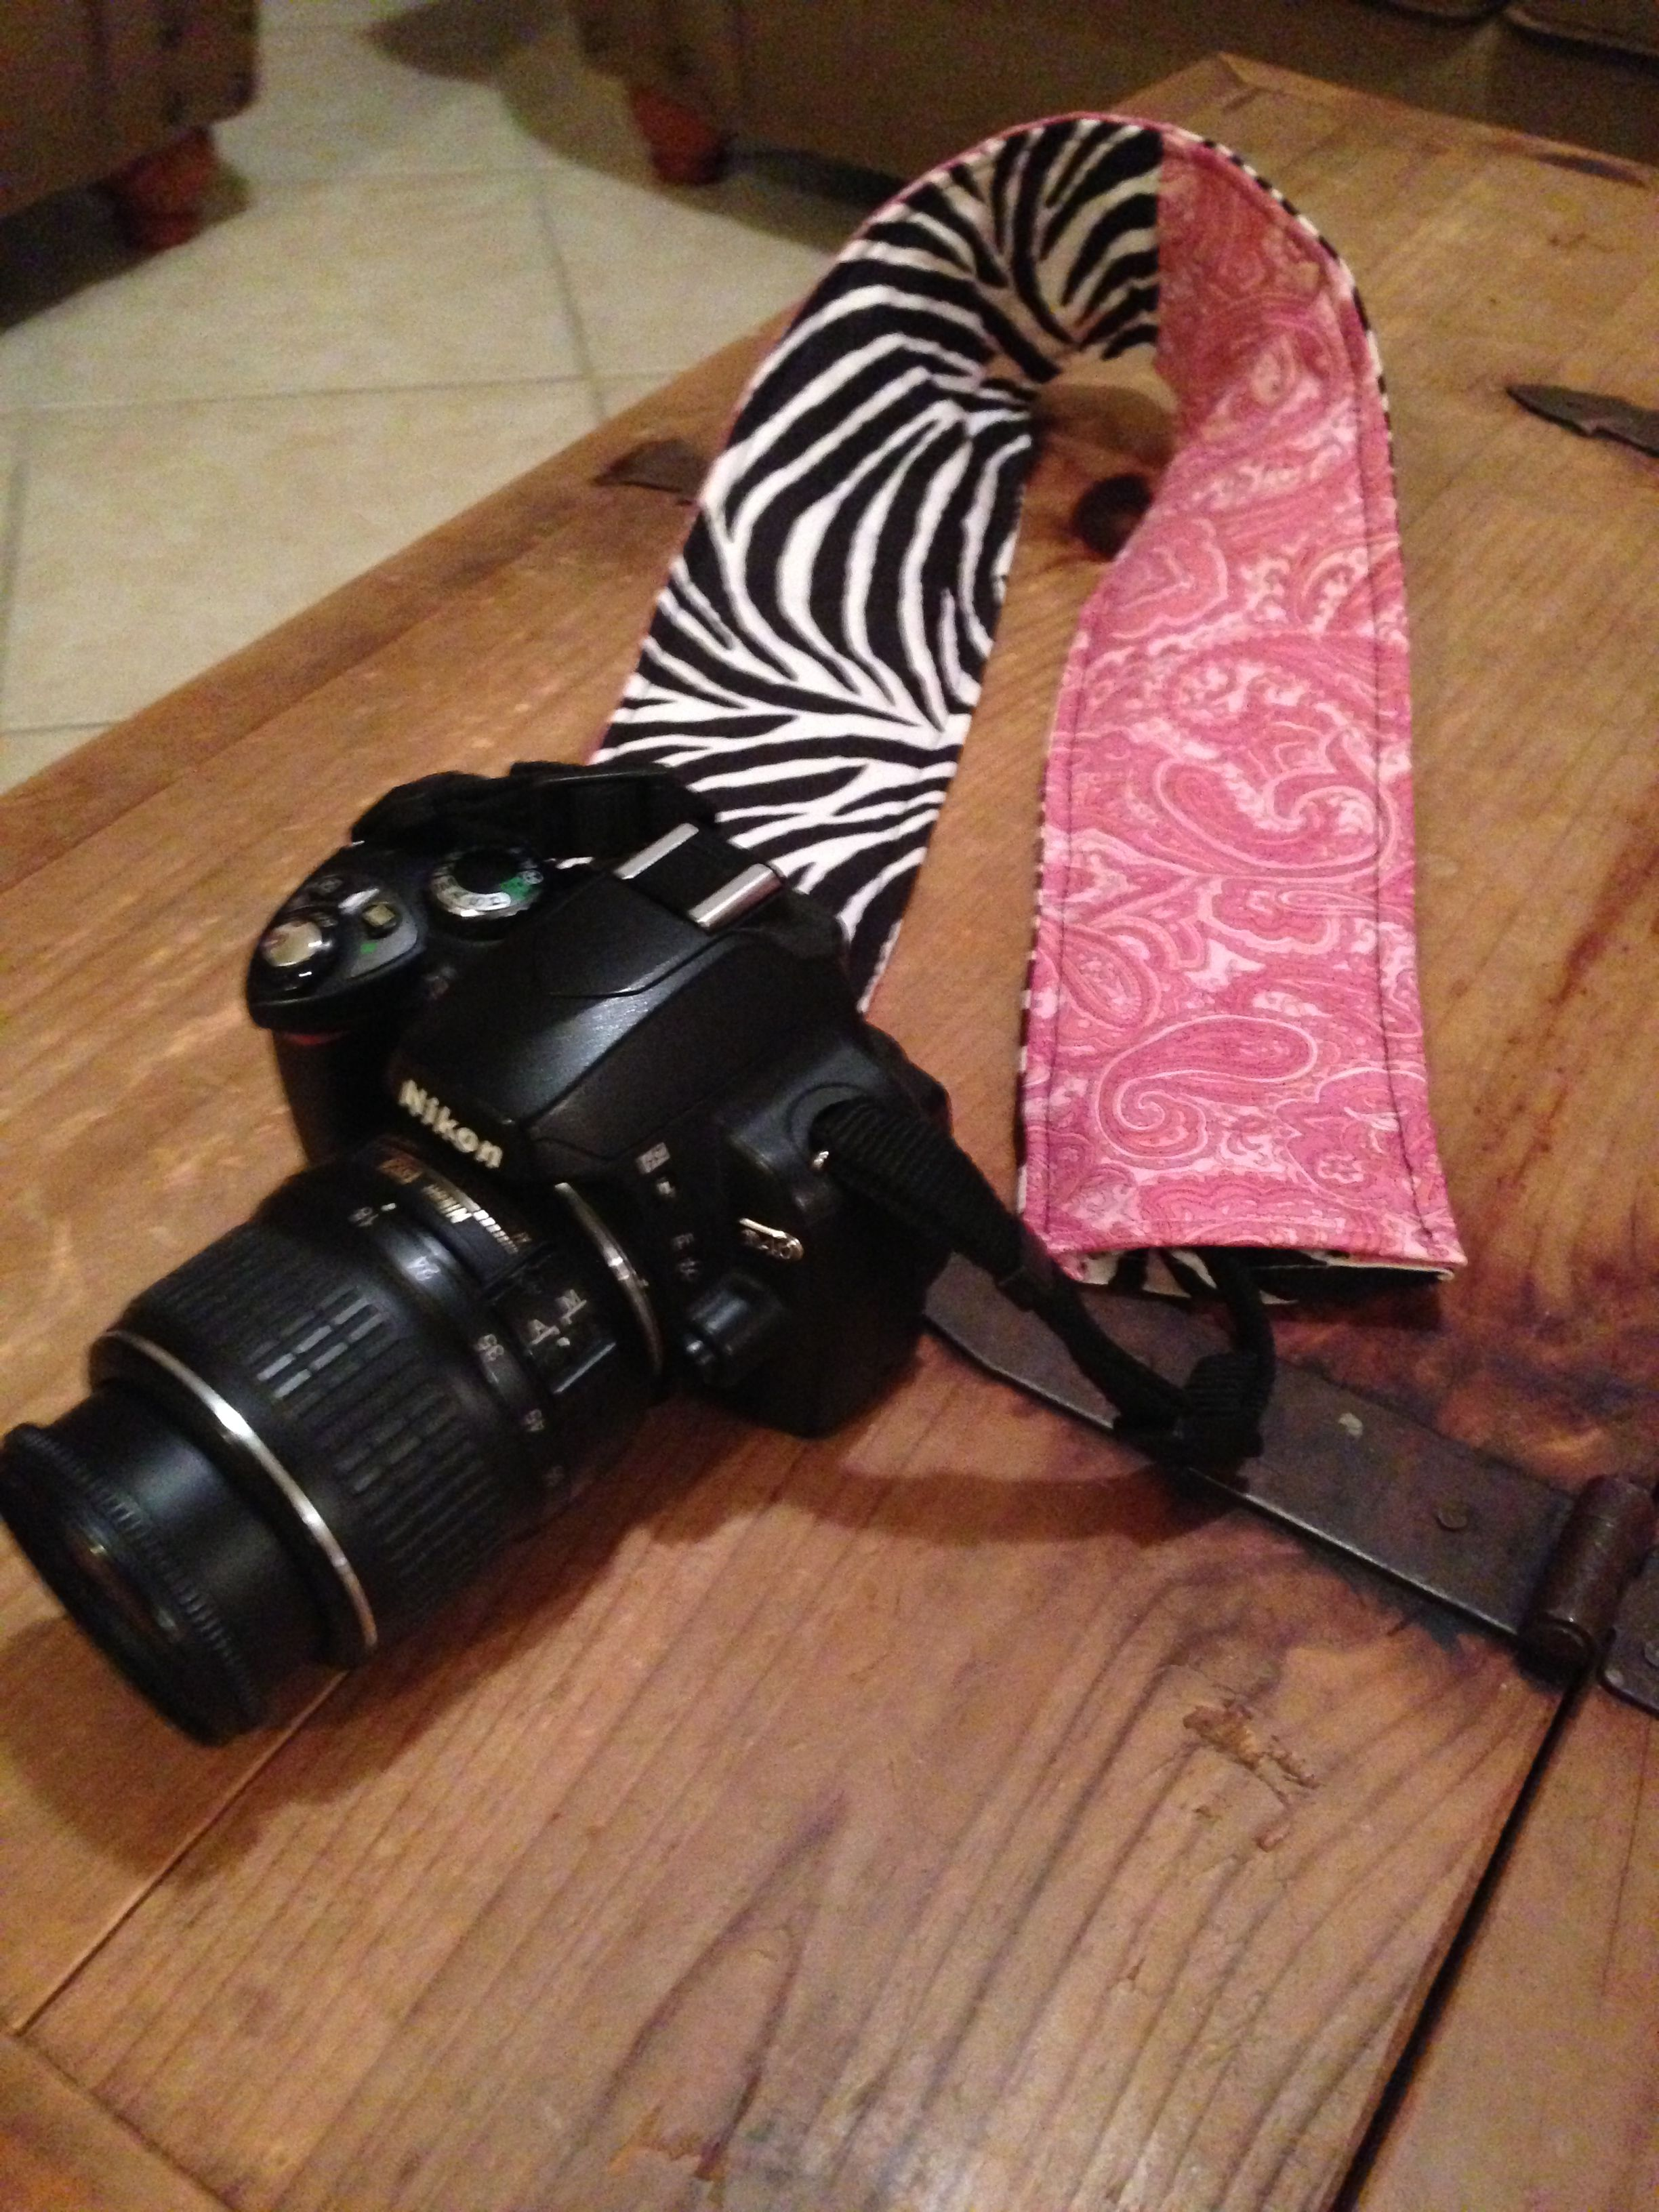 My friend is inspiring me! I'm going to have to make something cool soon.    Easy sewing project: camera strap cover.